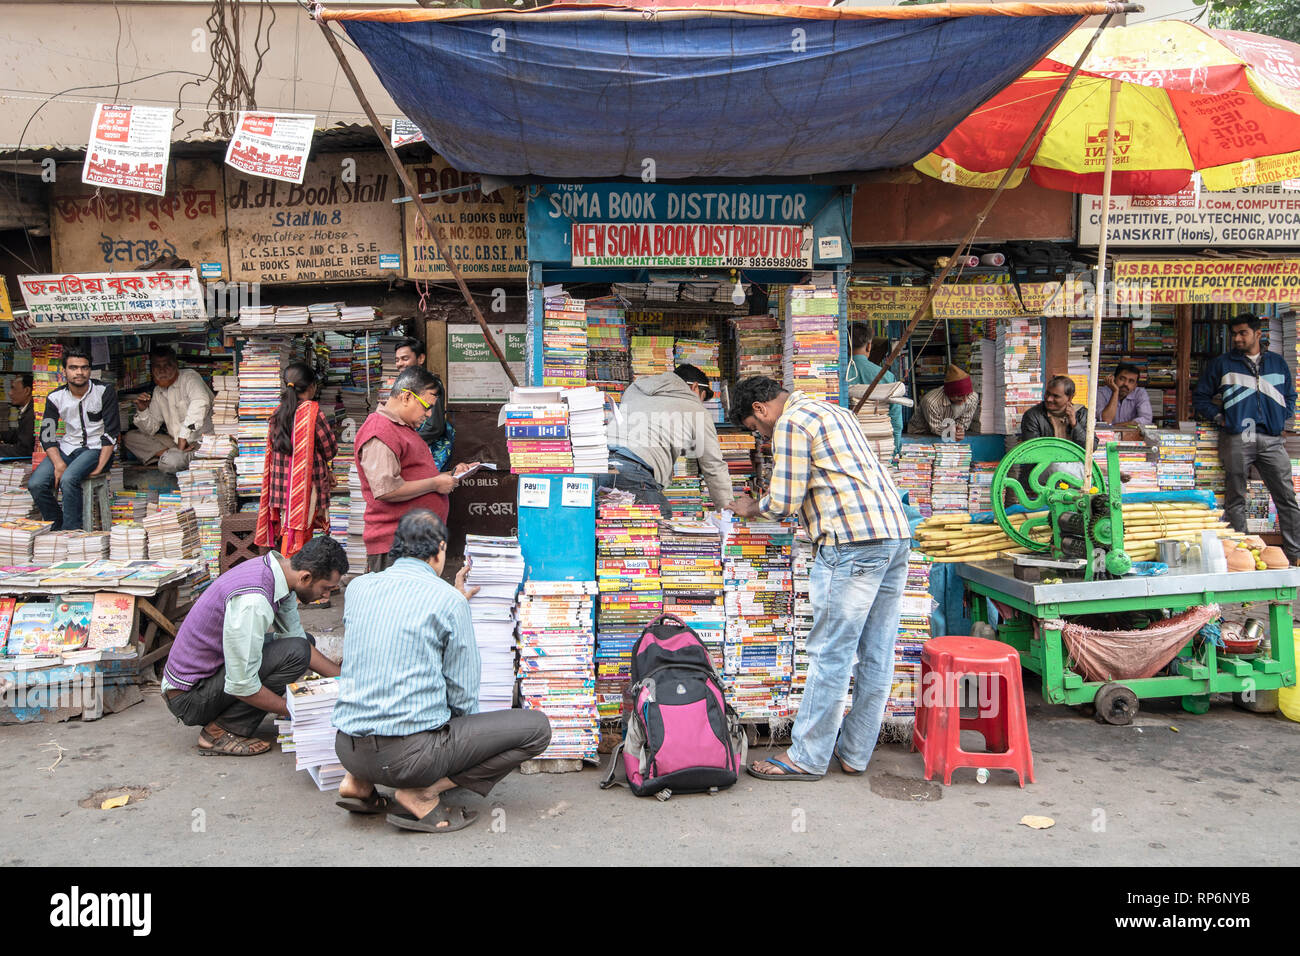 Educational book sellers in kolkata with many local people looking browsing for books to buy. - Stock Image